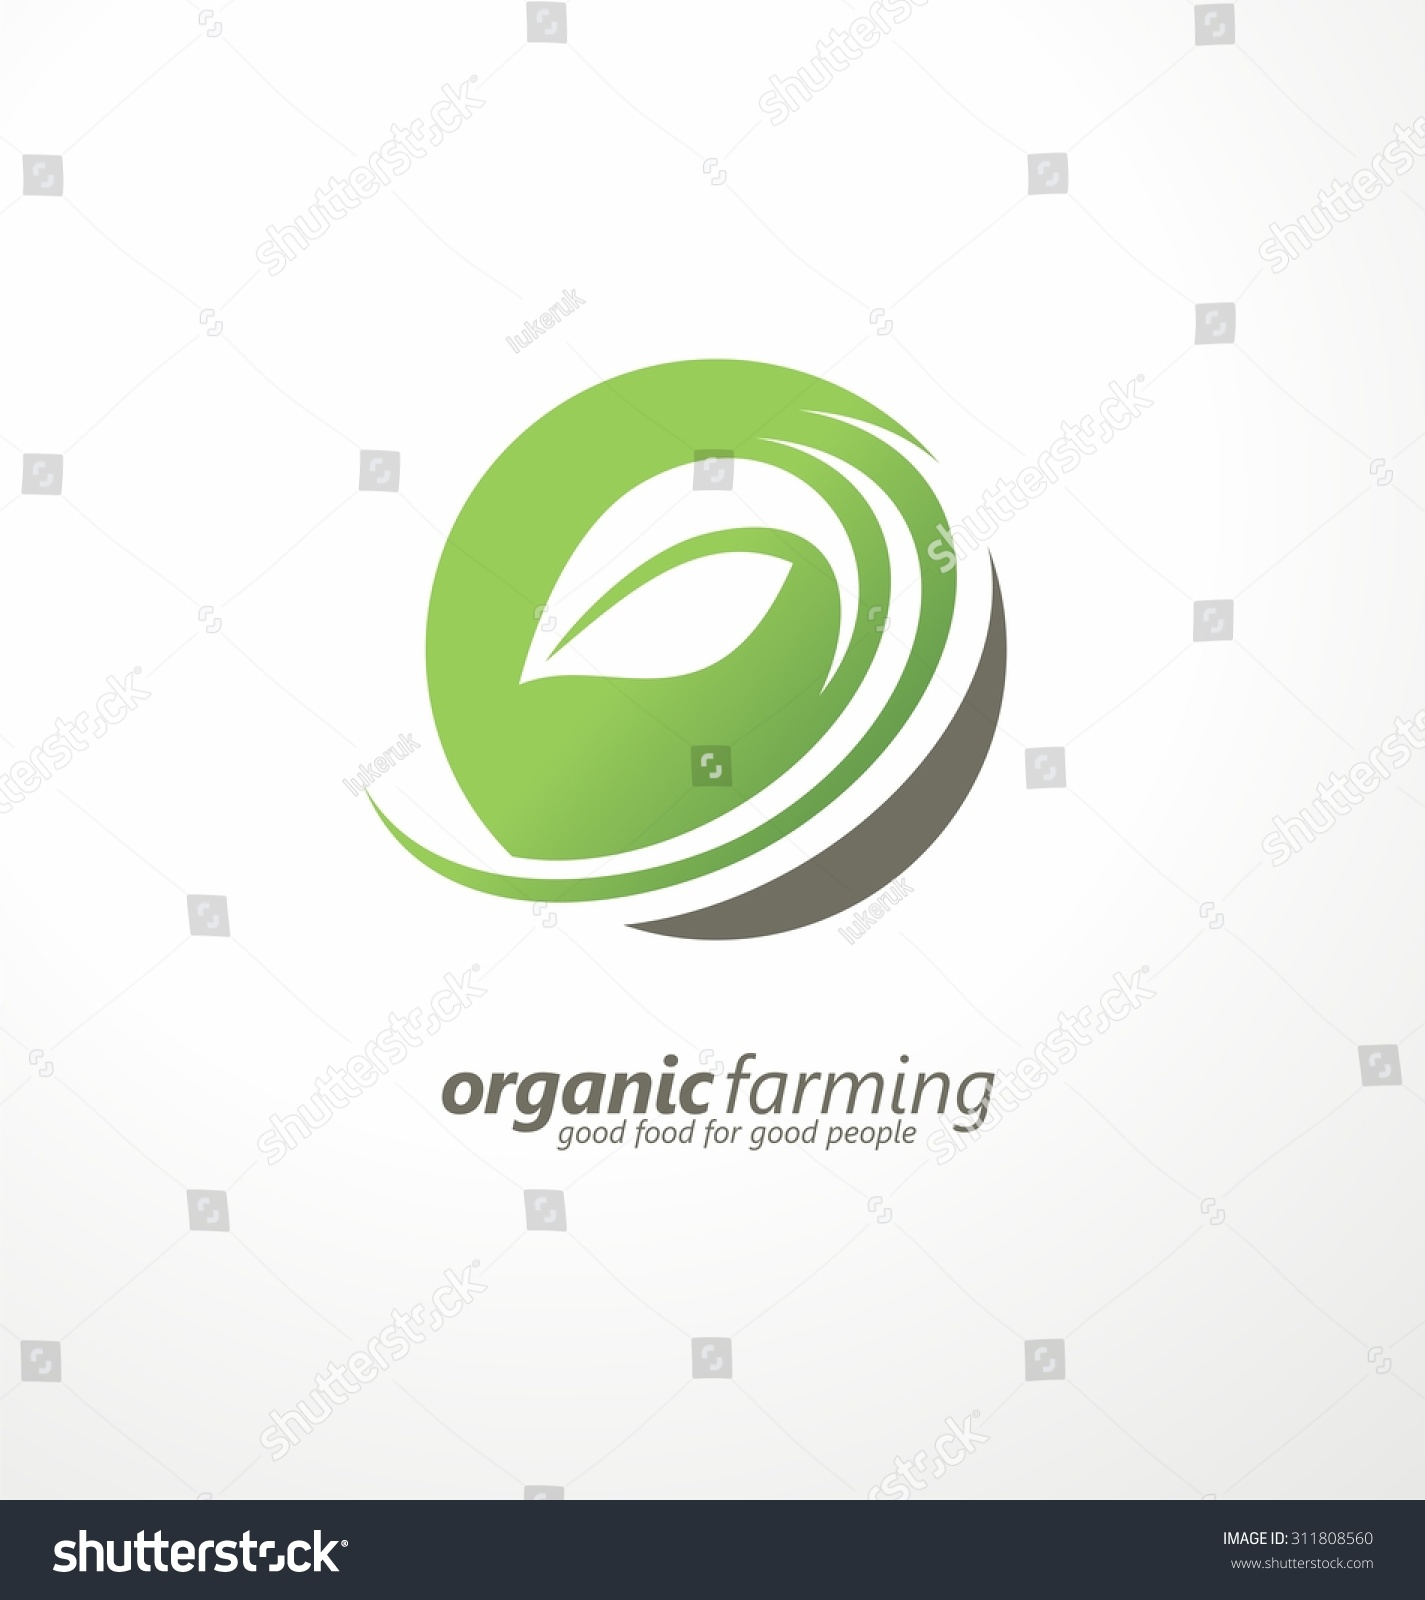 organic farming logo design idea good food for good people creative symbol concept farm logo - Design Idea